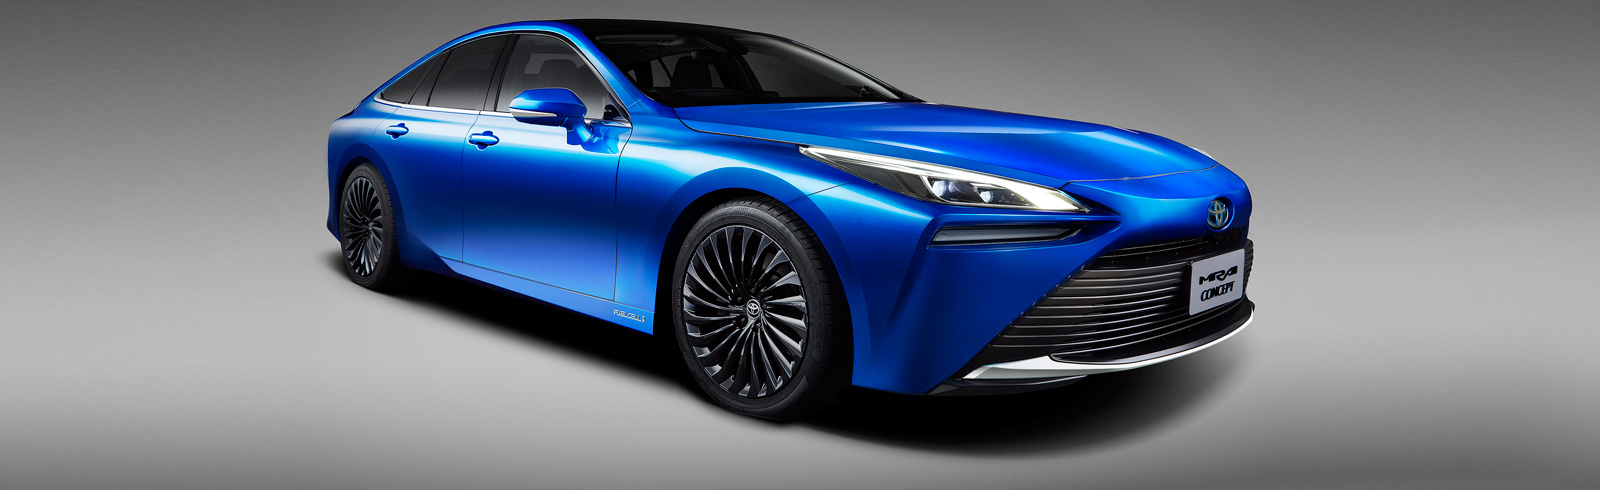 The next-generation Mirai Concept from Toyota looks stunning